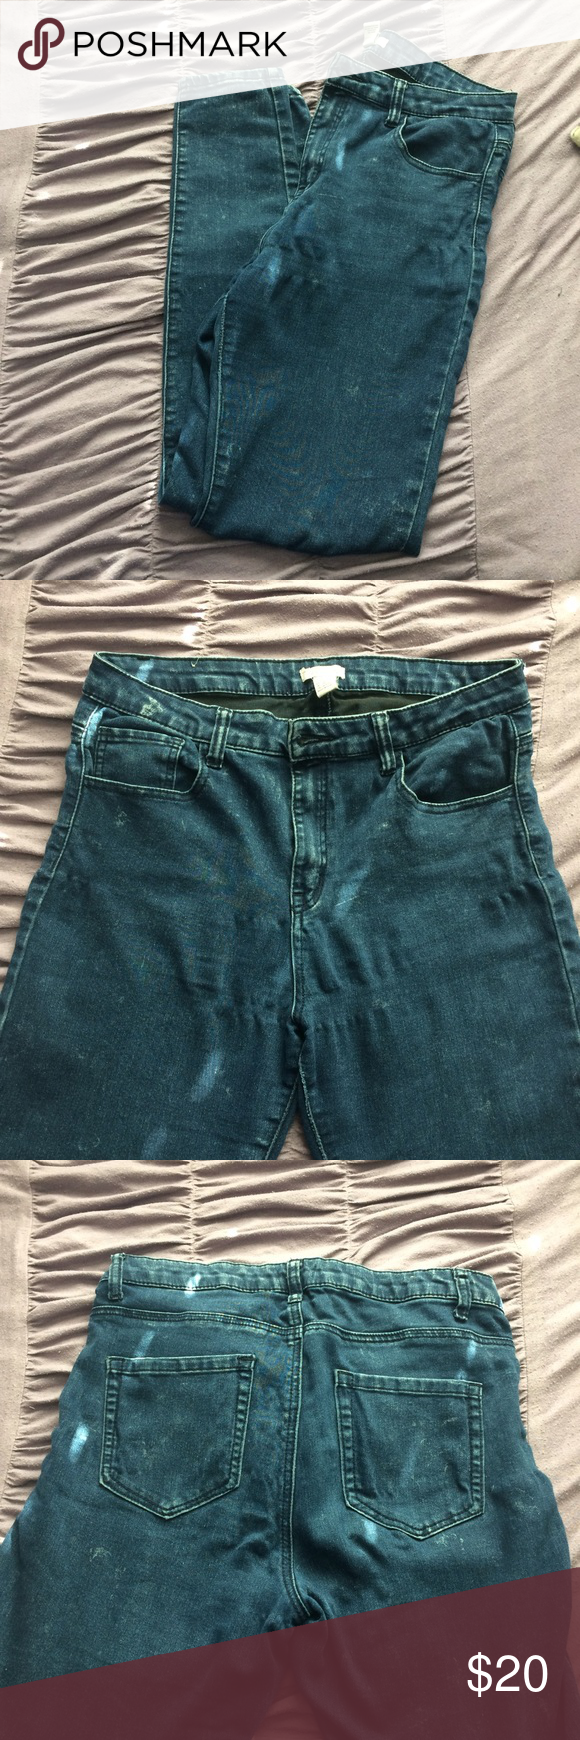 High waisted jeans Forever 21, used but good condition. Reason for selling is because I lost weight and they don't fit anymore. Super cute and comfortable jeans. Forever 21 Jeans Skinny